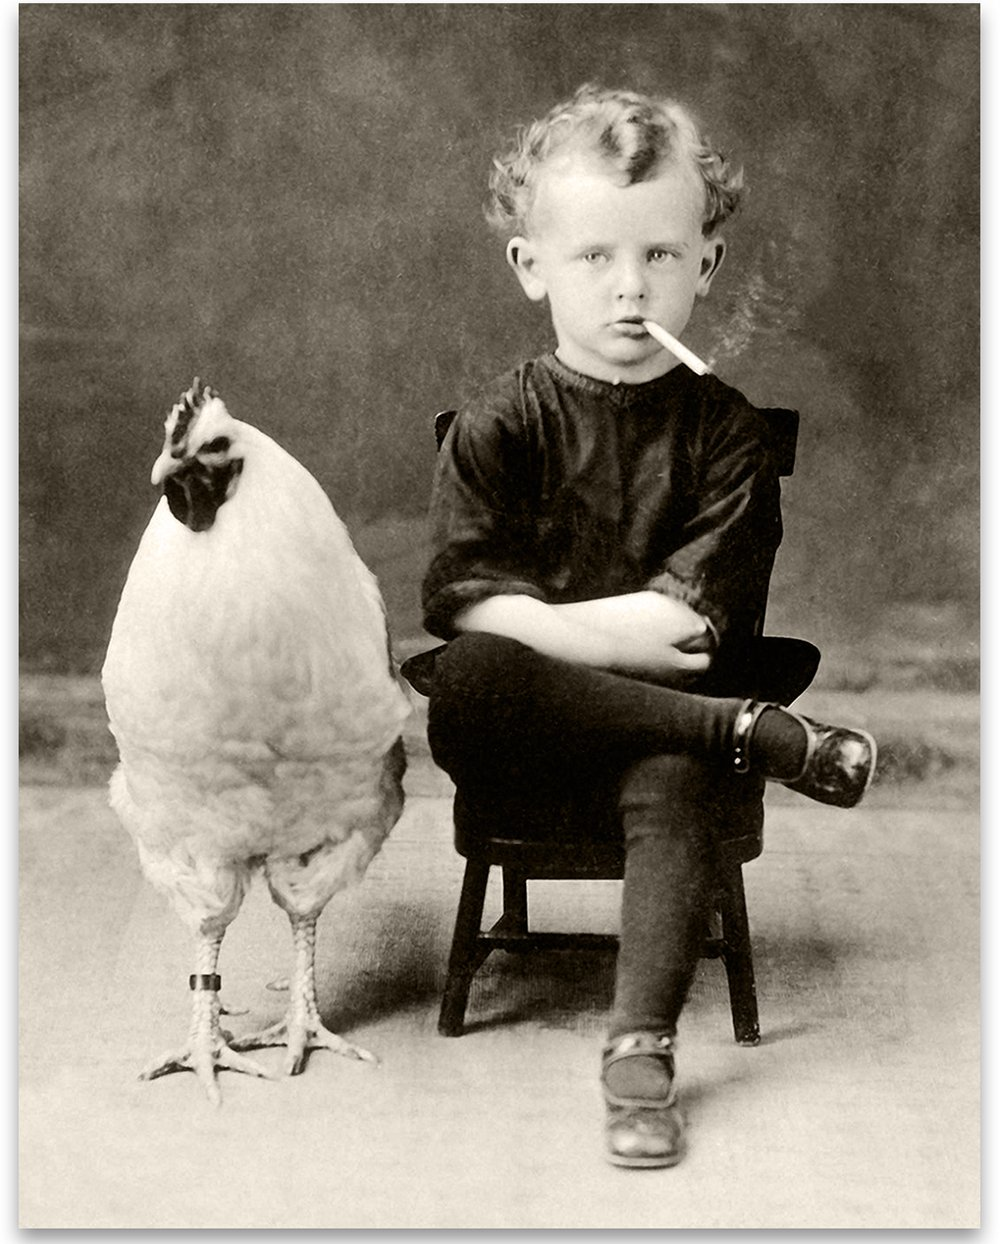 Lone Star Art Bizarre Strange Weird Boy Smoking Cigarette with Giant Chicken - 11x14 Unframed Print - Perfect Vintage Home Decor